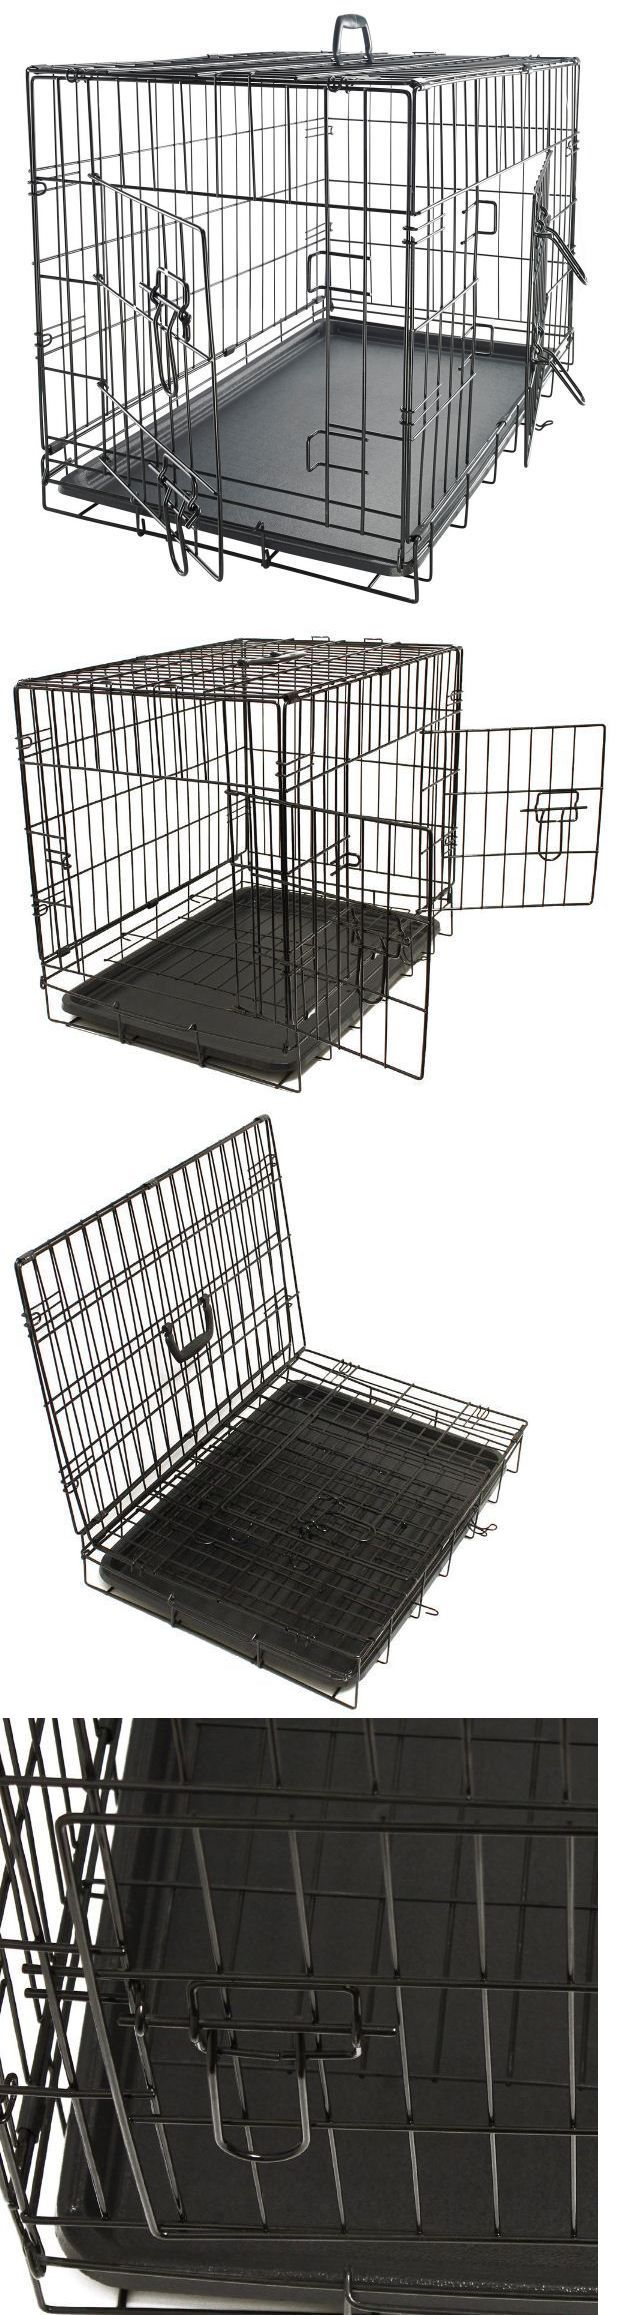 Cages and Crates 121851: Xxl Dog Crate Kennel Chew Resistant Extra Large 48 Inch Black Cage Pet Training BUY IT NOW ONLY: $78.98